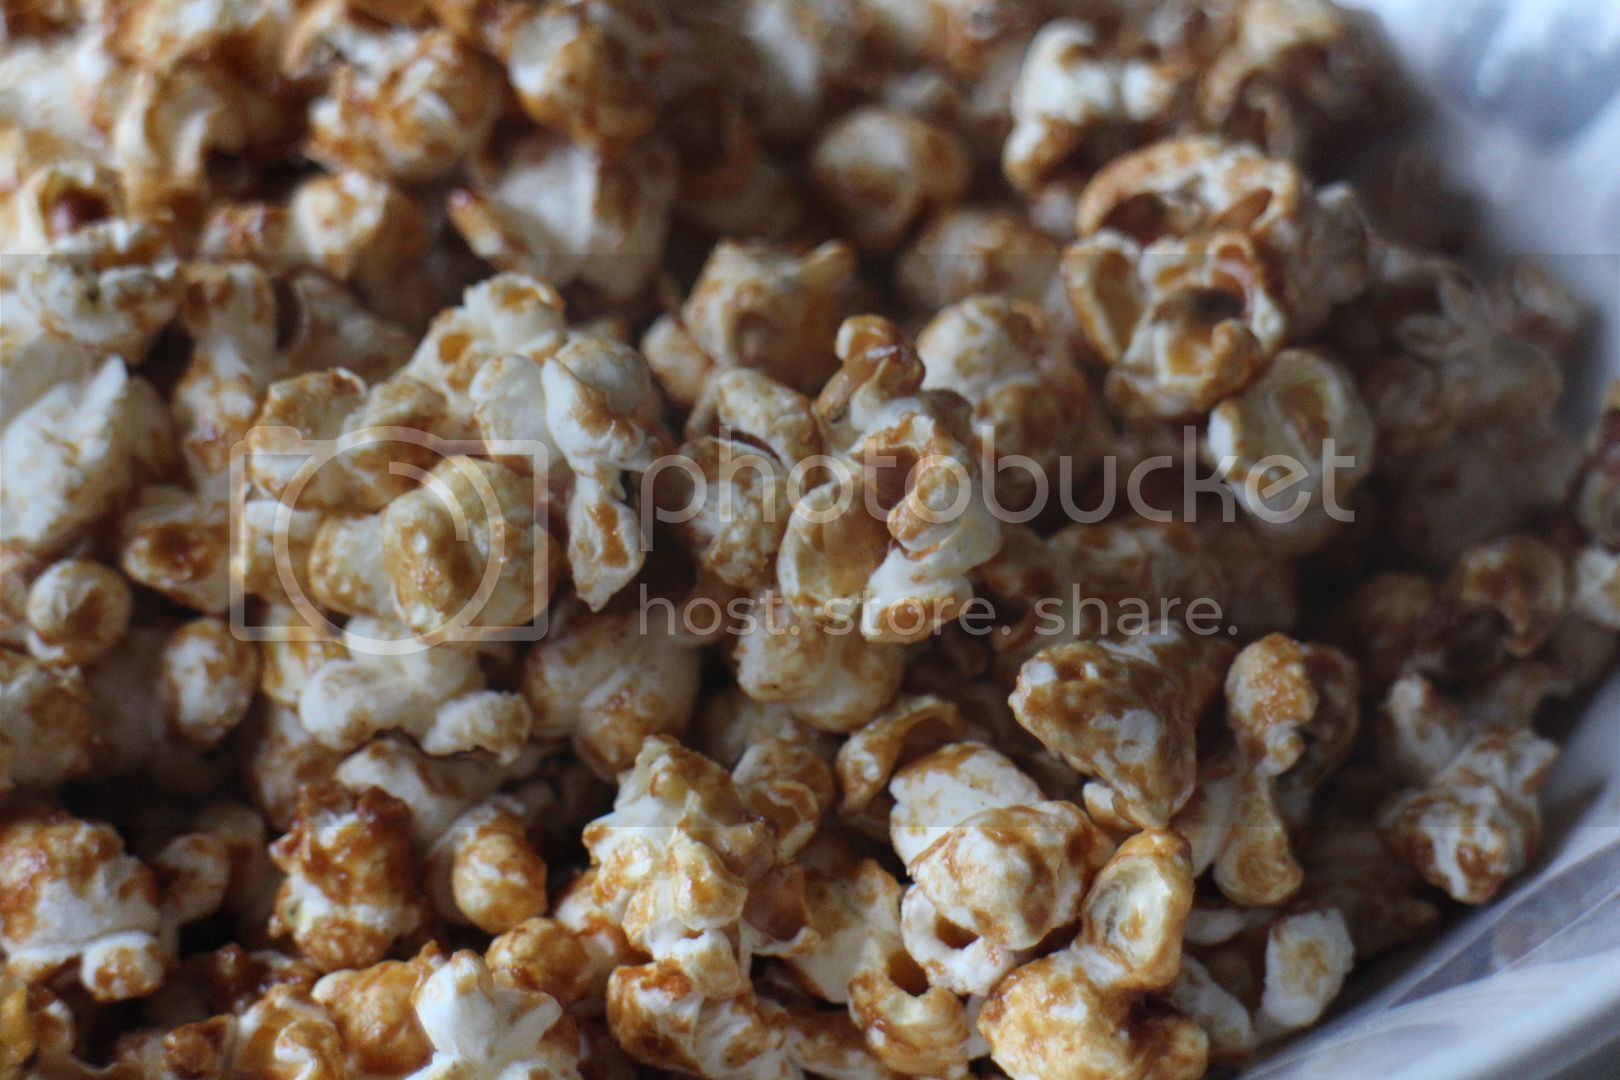 Recipe: Homemade Popcorn, Multiple Ways